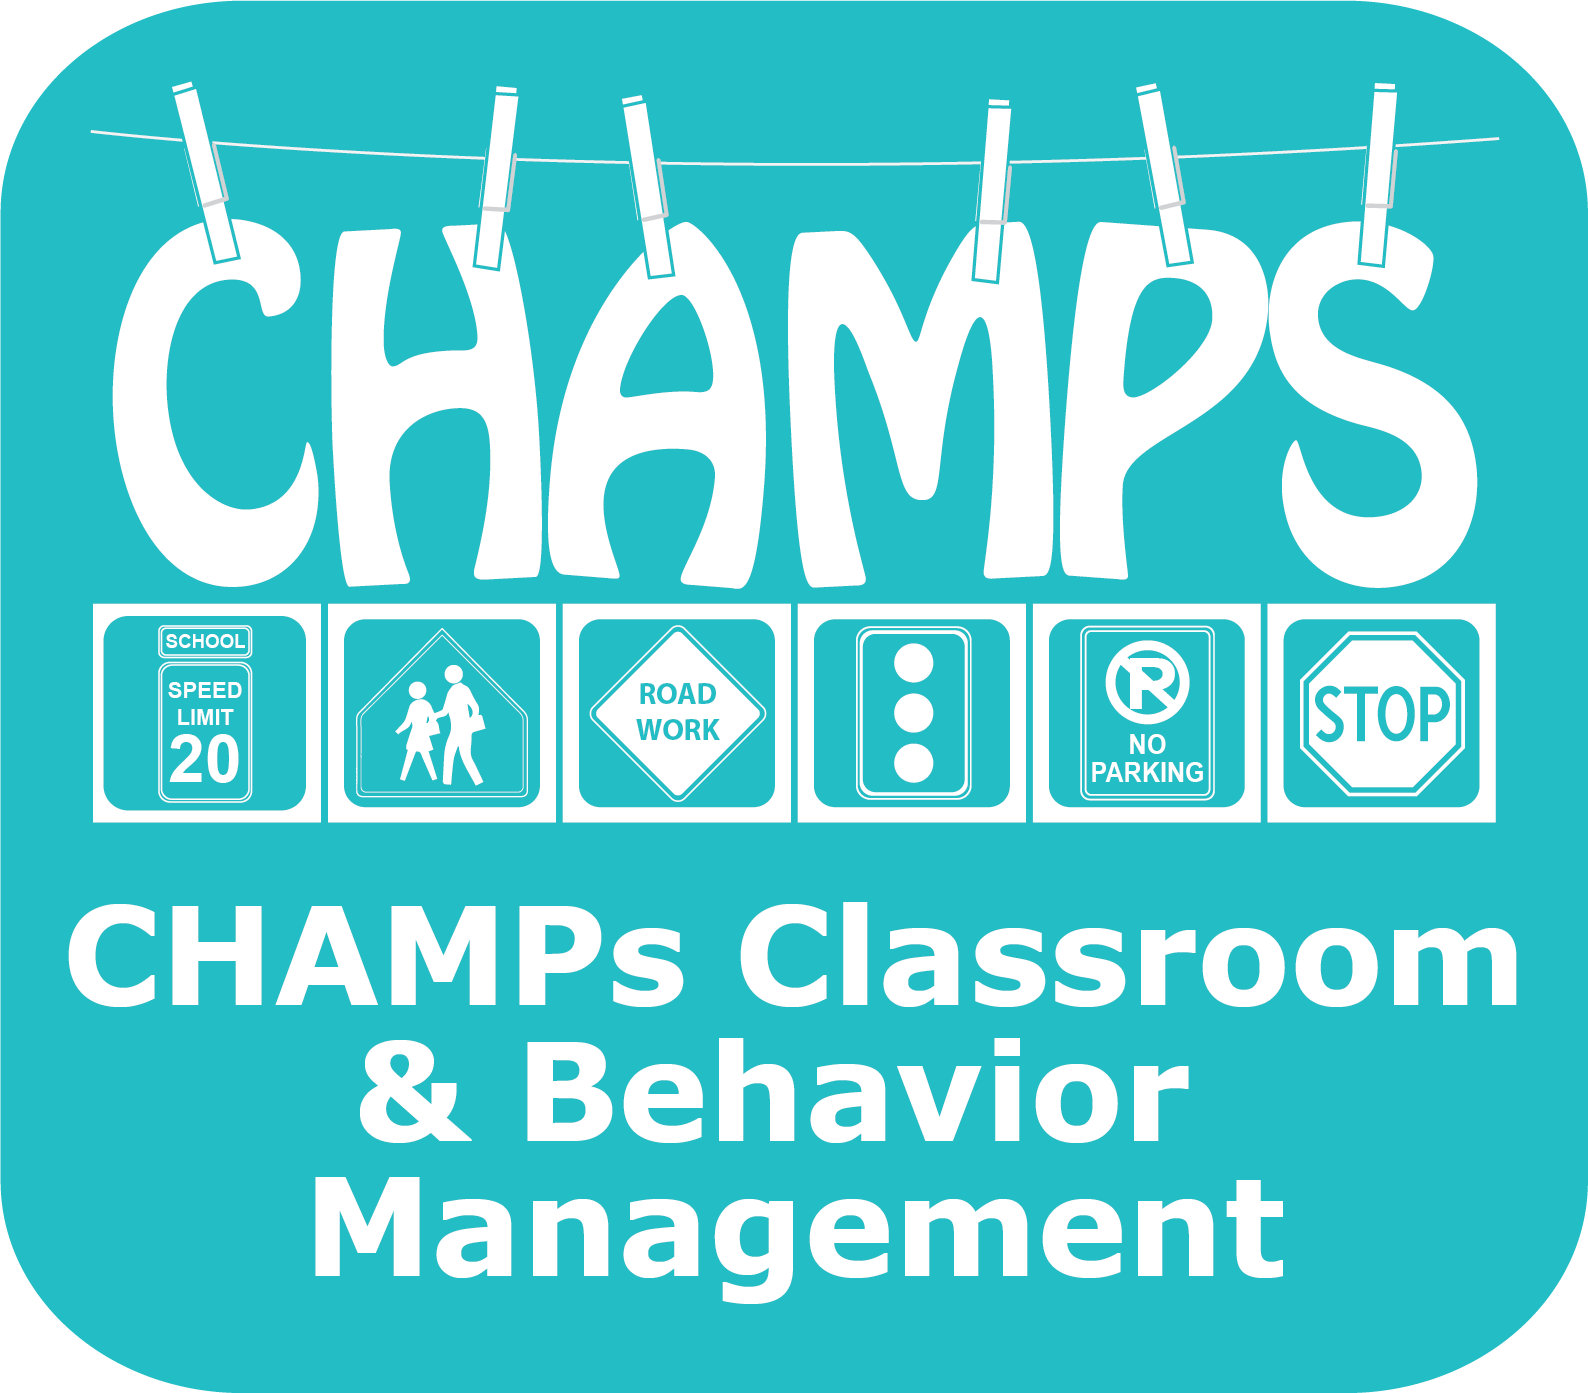 Champs Classroom and Behavior Management